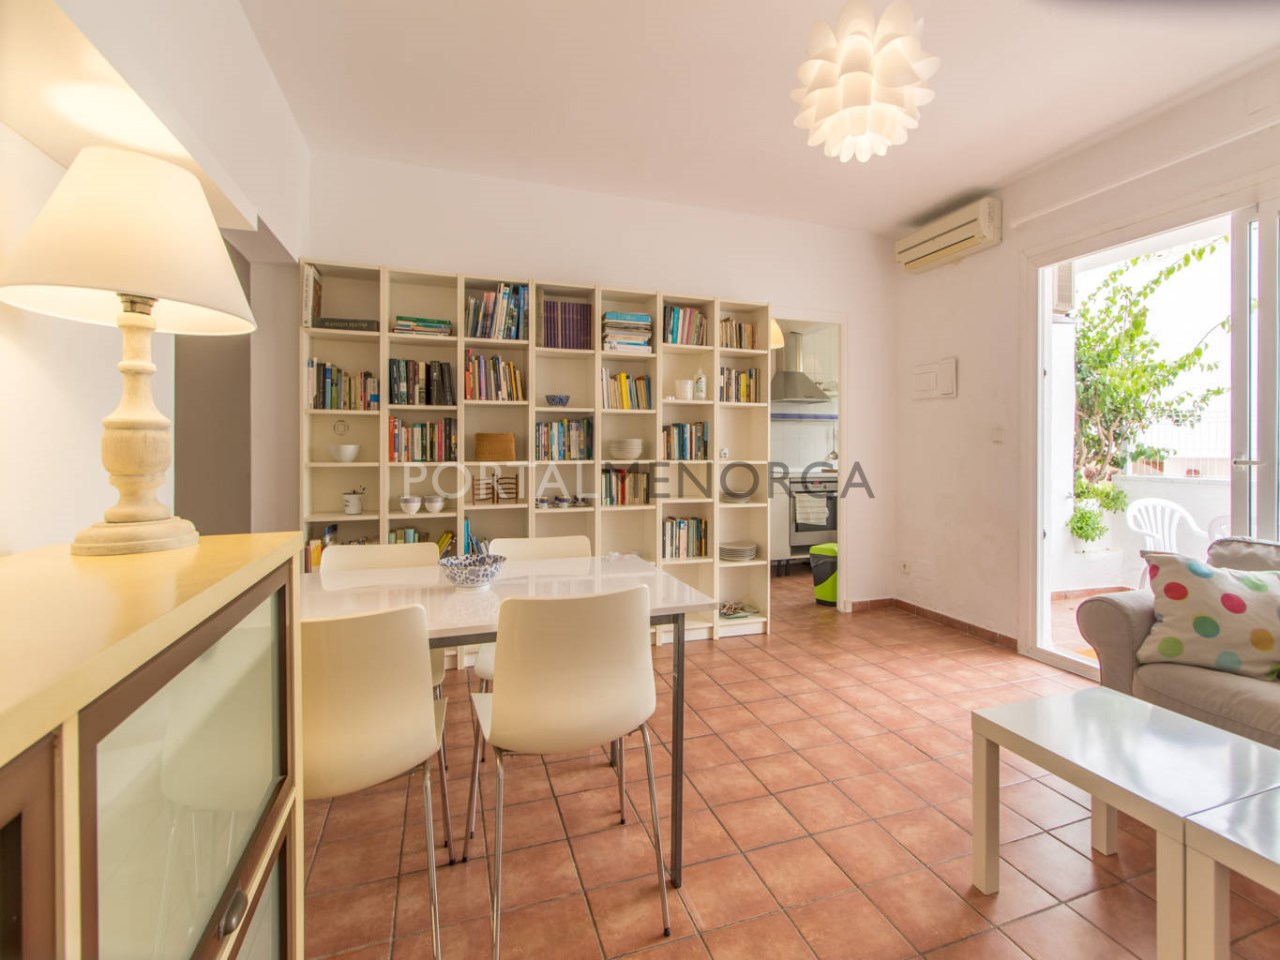 Renovated flat for sale in Cala Torret